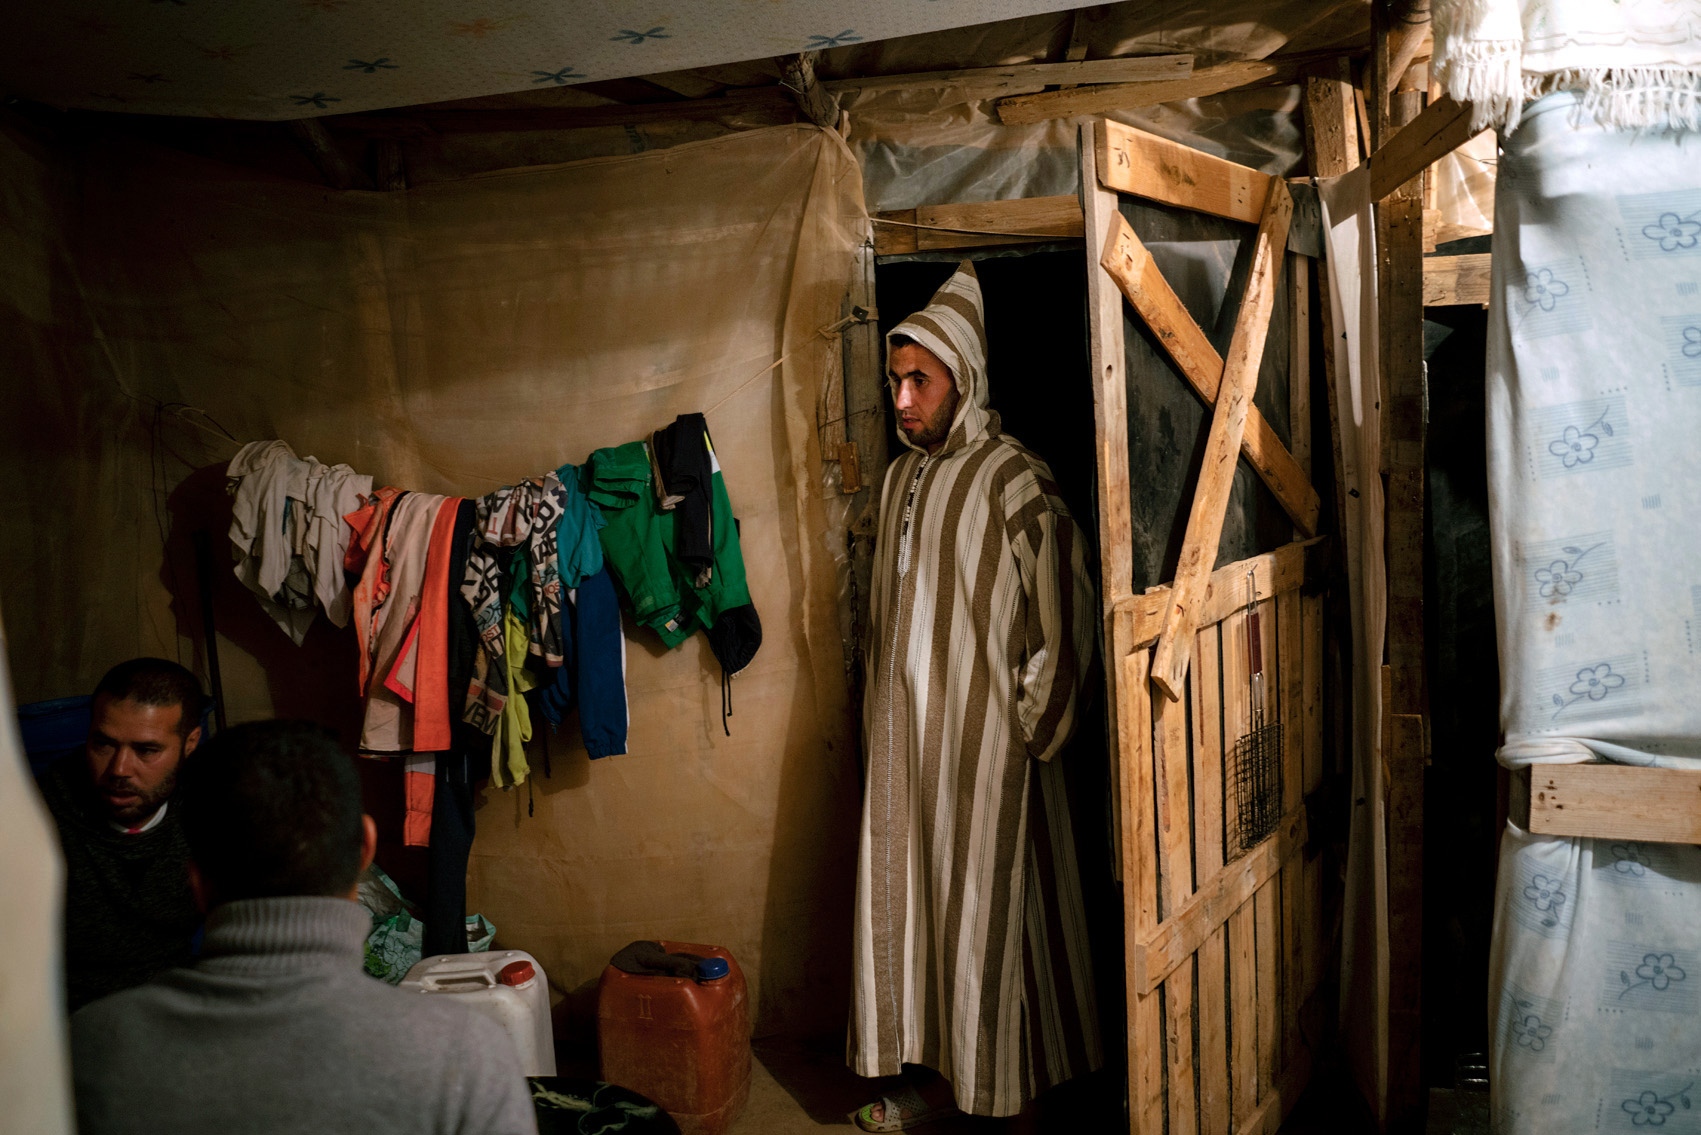 Moroccan migrant workers sharing a self-constructed house made of plastic sheets in the workers' ghetto, Spain.